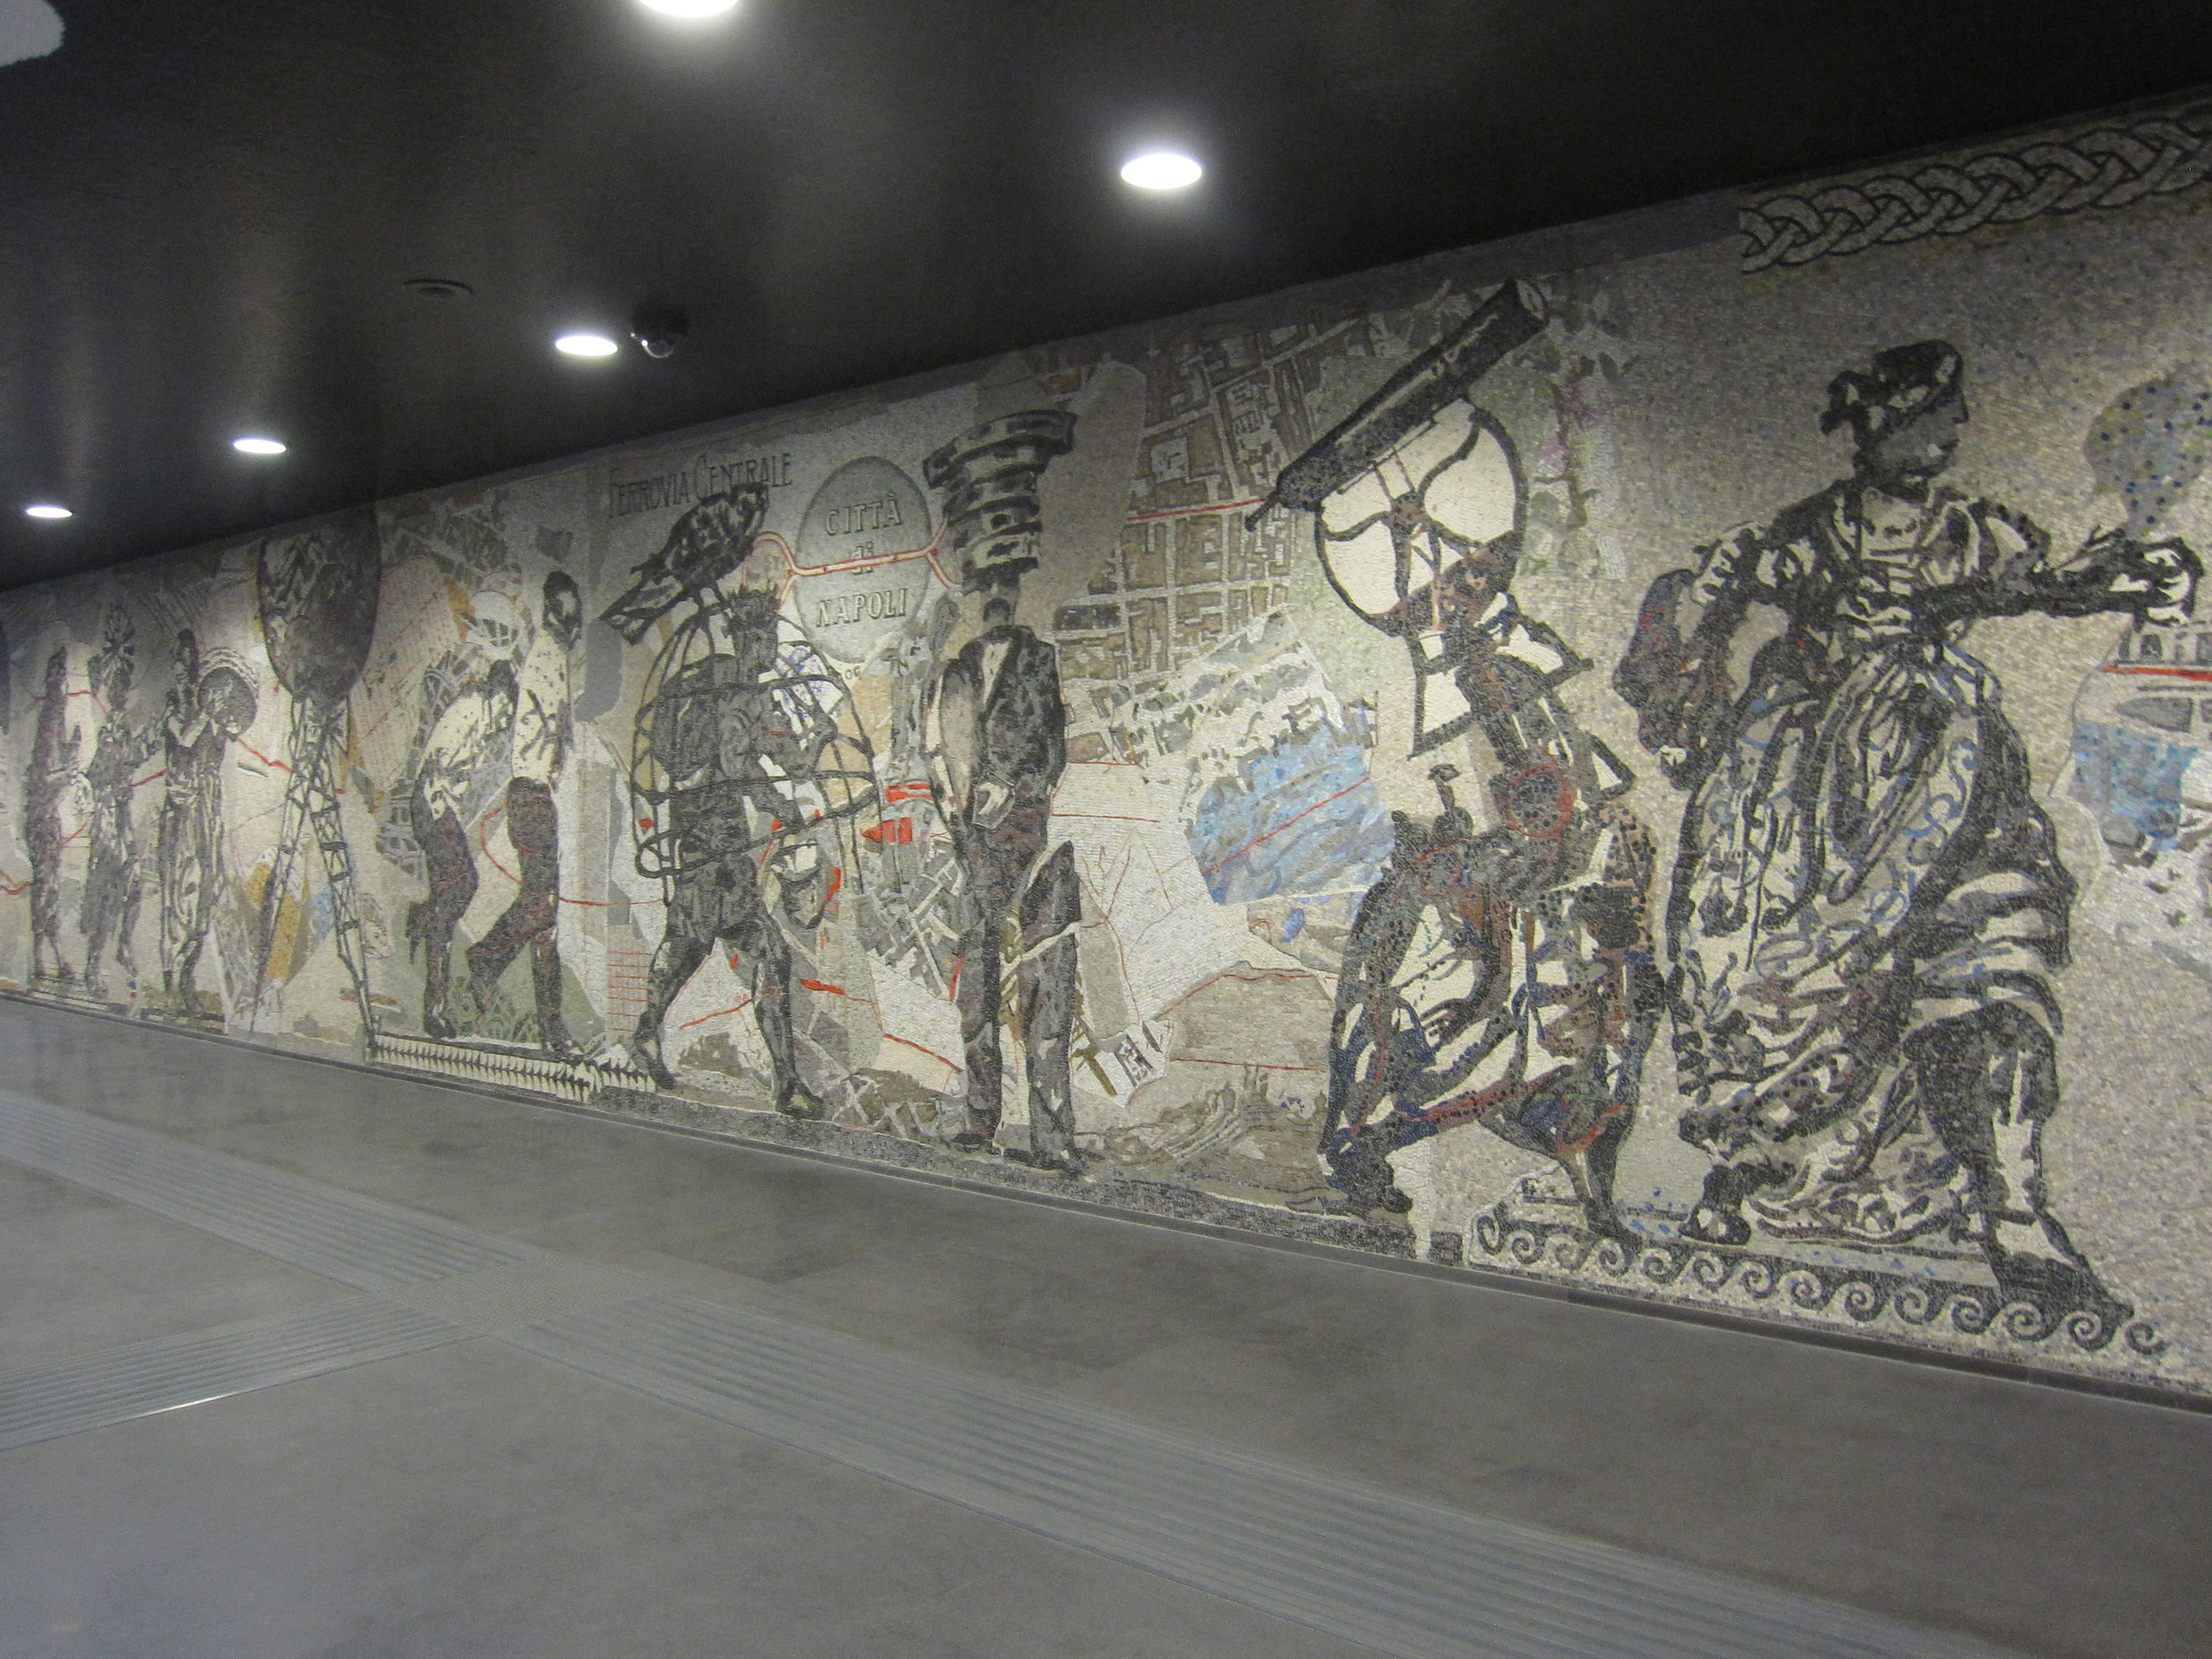 The mosaic ' Naples Procession'  by William Kentridge at Toledo station.